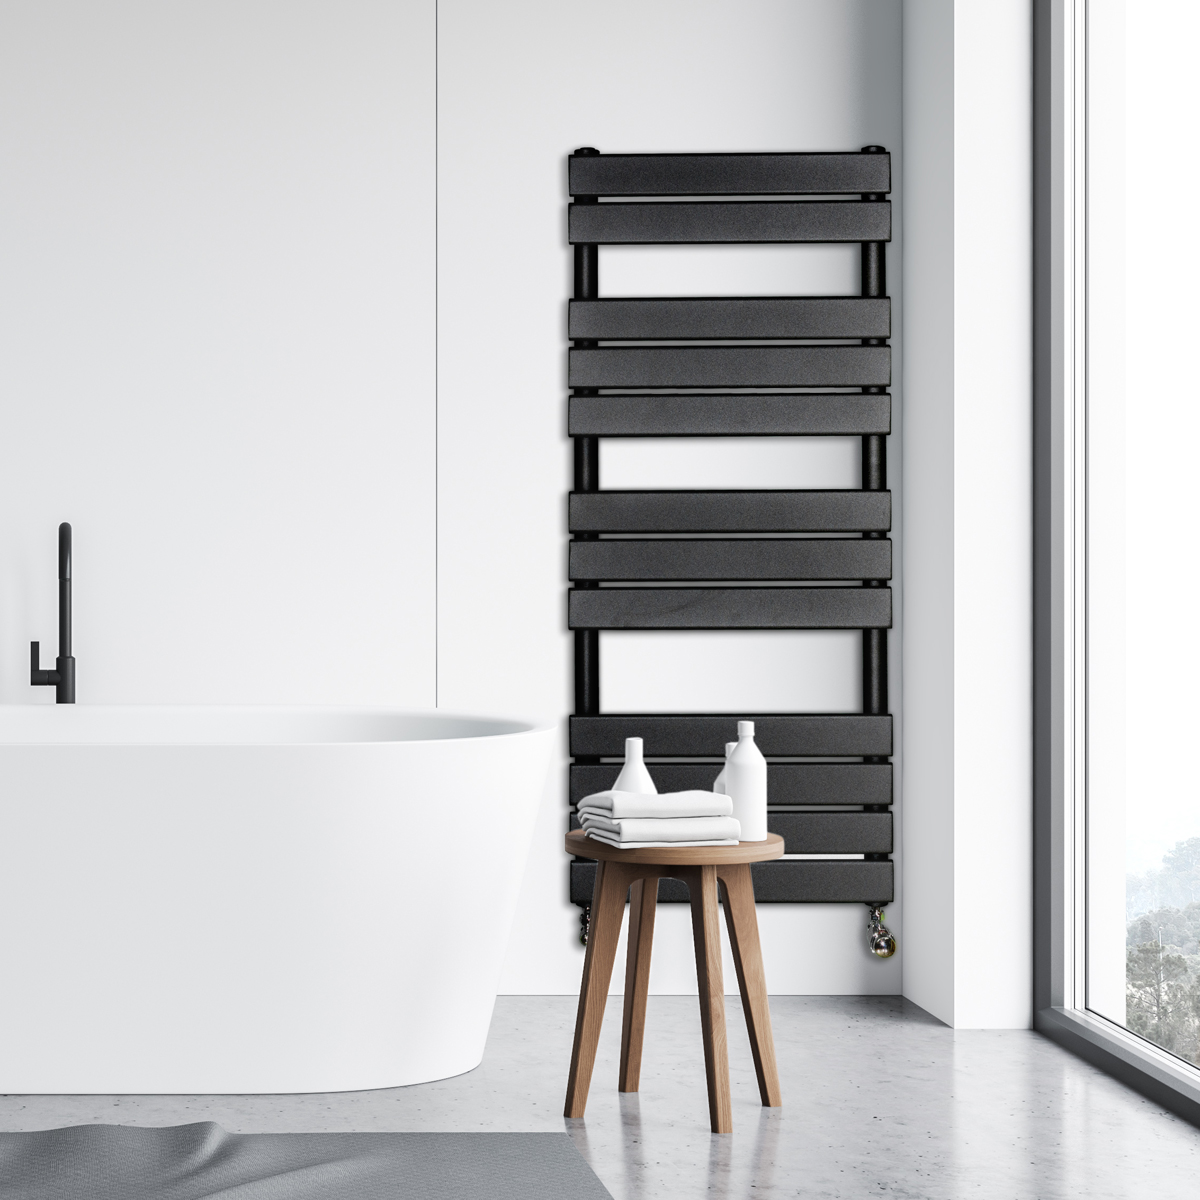 Adige Designer Towel Radiator Black Medium RAD-AF-FR01005B